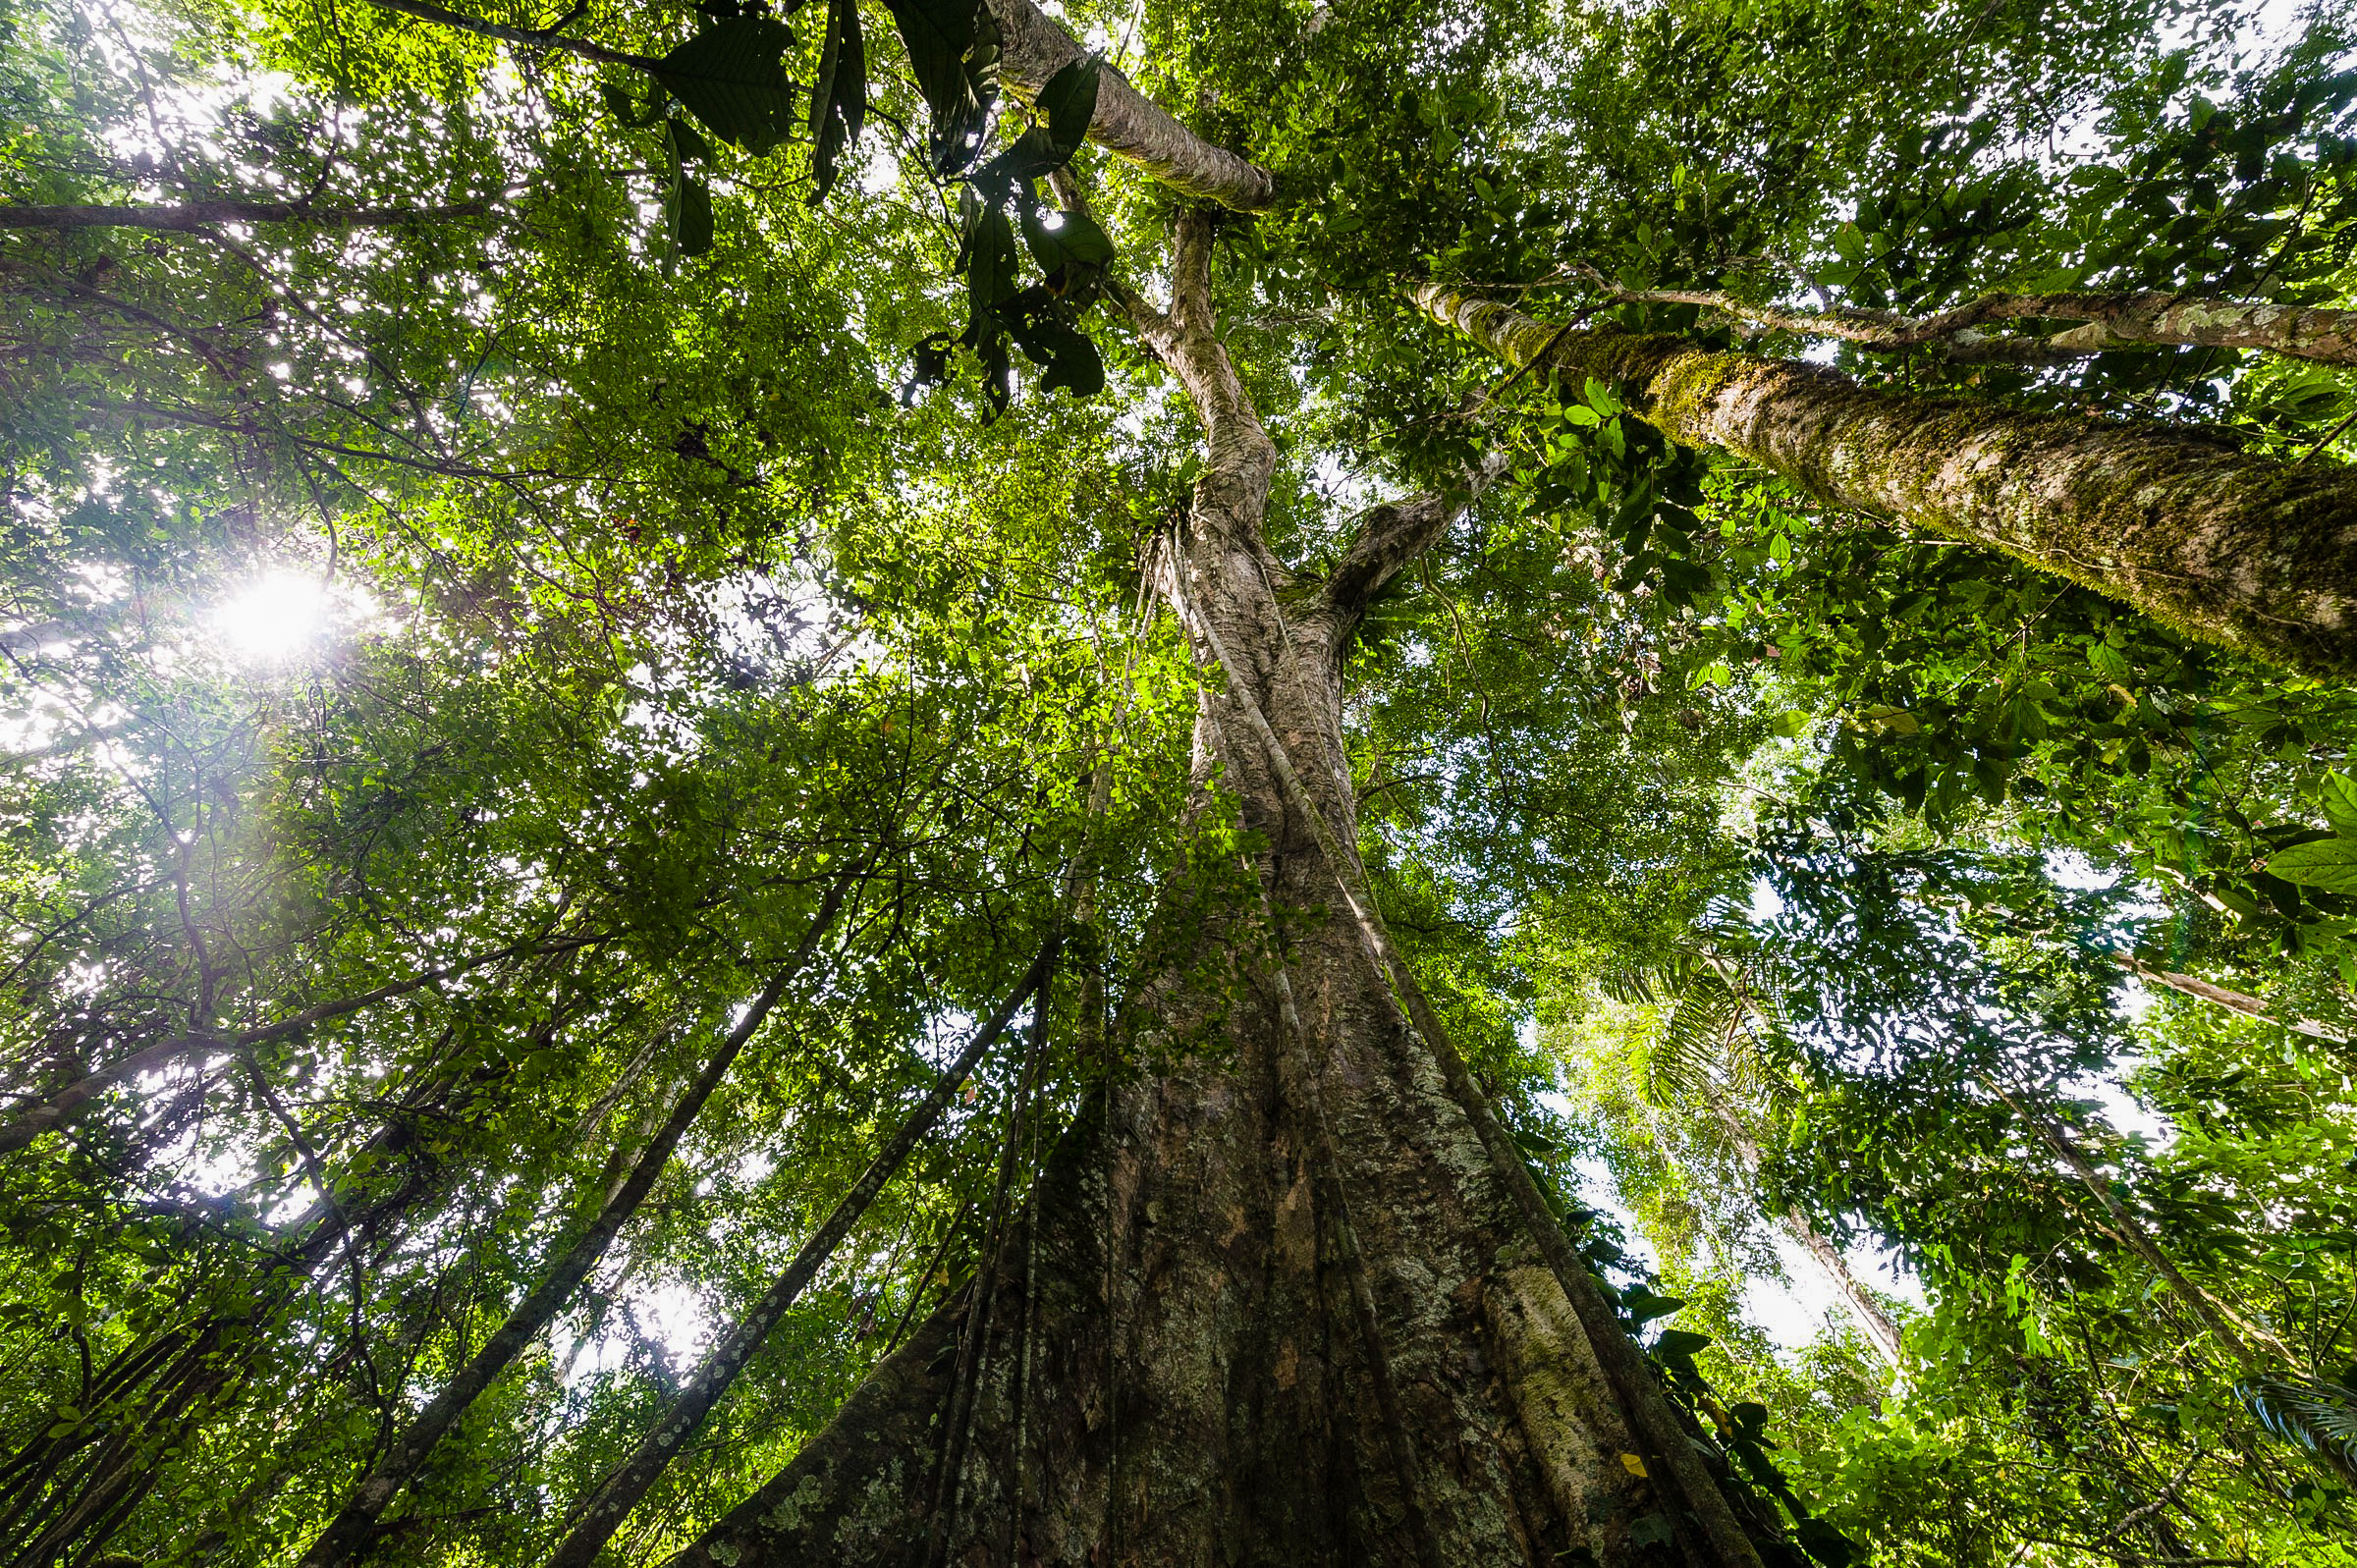 The value of native trees is well known to the extractivist economy, but overlooked and little understood in a context of silviculture (reforestation). Photo thanks to Jason Edwards / National Geographic.